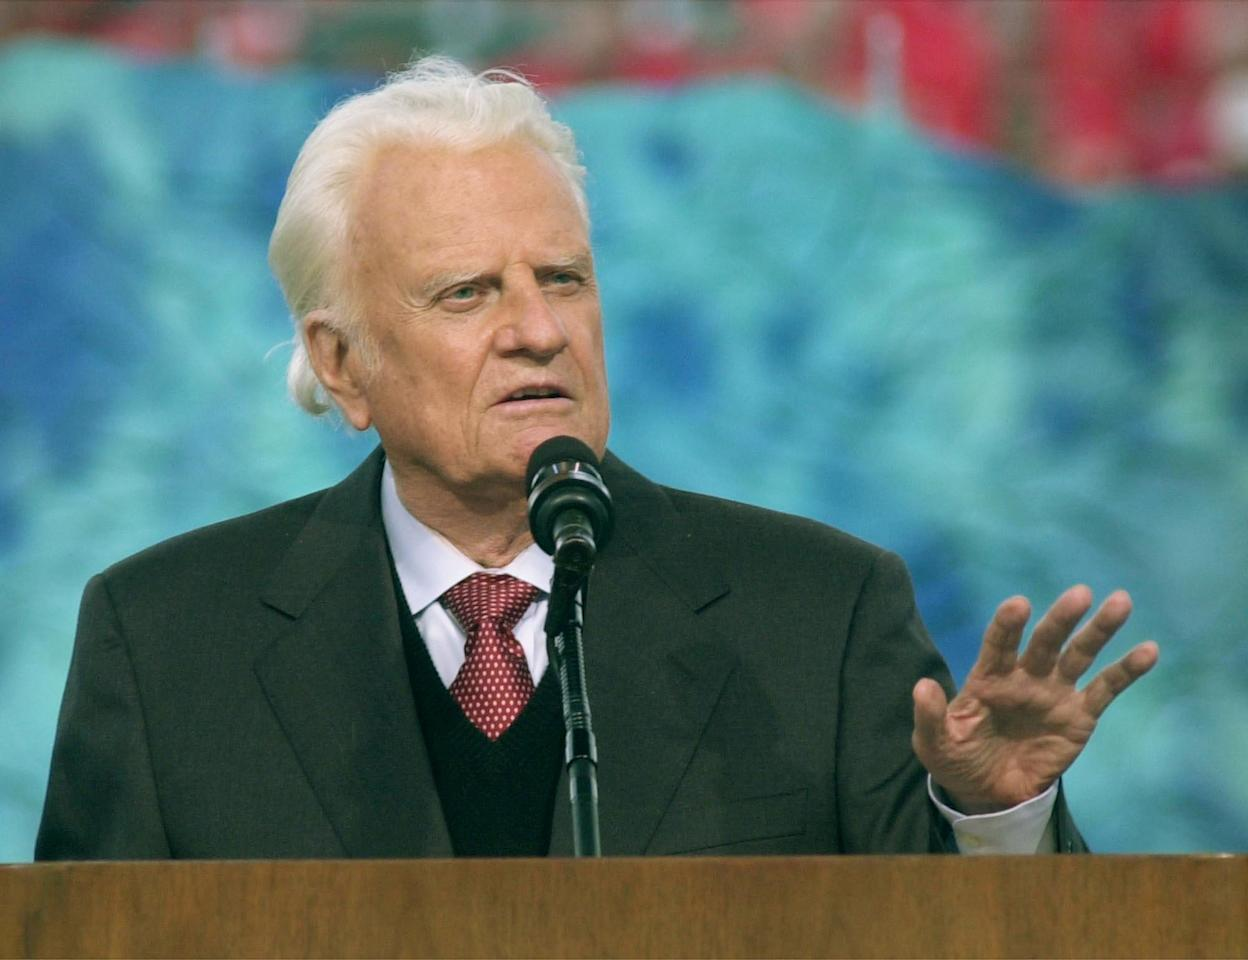 <p>The evangelist Billy Graham passed away Feb. 21 from natural causes. He was 99.<br />Since 1992 he had suffered from hydrocephalus, and had significant hearing, vision and balance loss.<br />Throughout his life, Graham became known as one of the world's most influential Christian leaders, and provided spiritual counsel for every U.S. president from Harry Truman to Barack Obama. He advocated against racial segregation and was frequently named in Gallup polls of the most admired men and women. However, he has drawn criticism in recent years for his views on women and homosexuality.<br />(Photo by David Kohl, AP) </p>